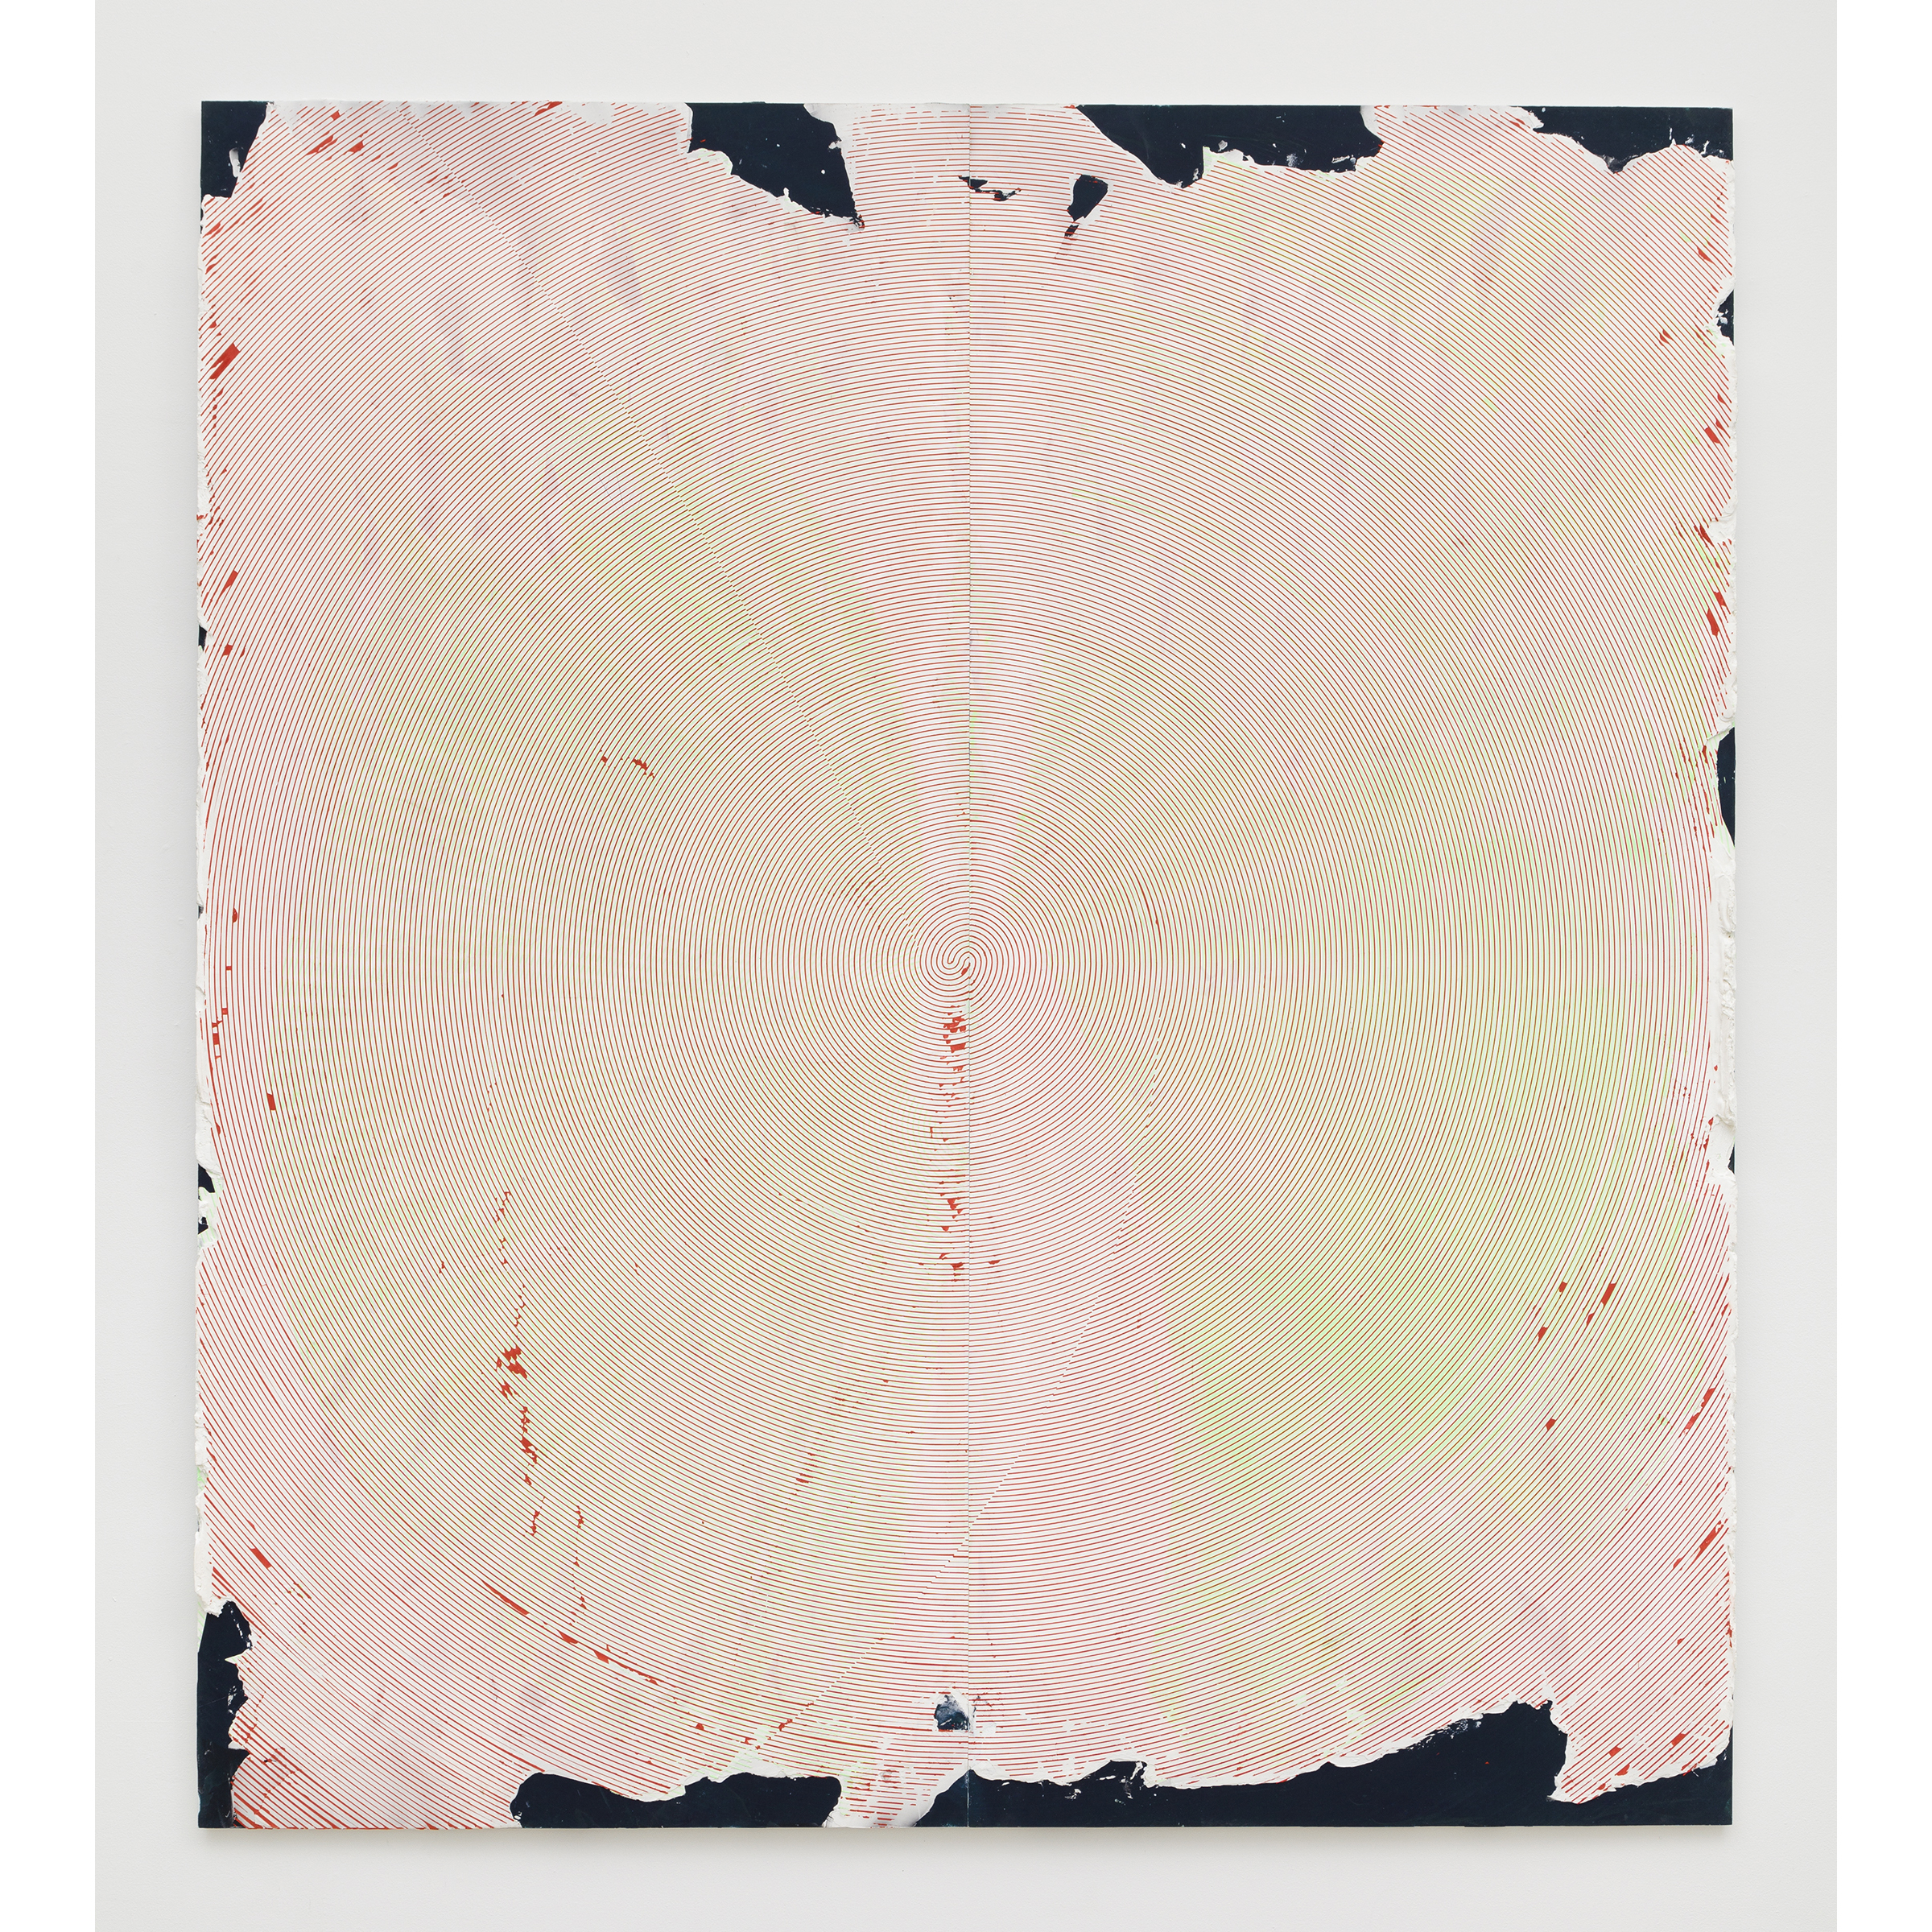 Nicolas Roggy,  Untitled , 2014, primer, modeling paste, pigment, acrylic paint on PVC, 92.9 x 82.7 x 1 in